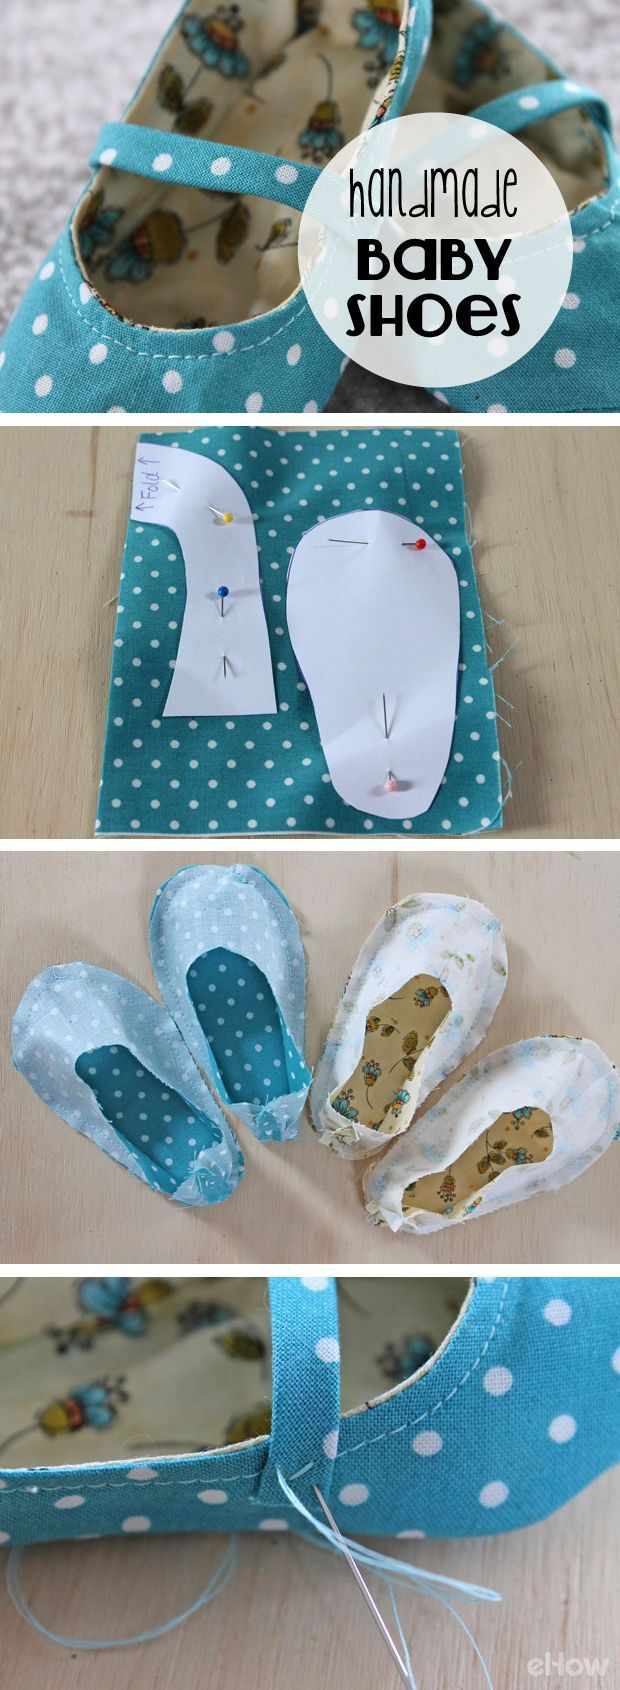 So adorable! Who knew making fabric baby shoes were this simple! Don't spend money on expensive